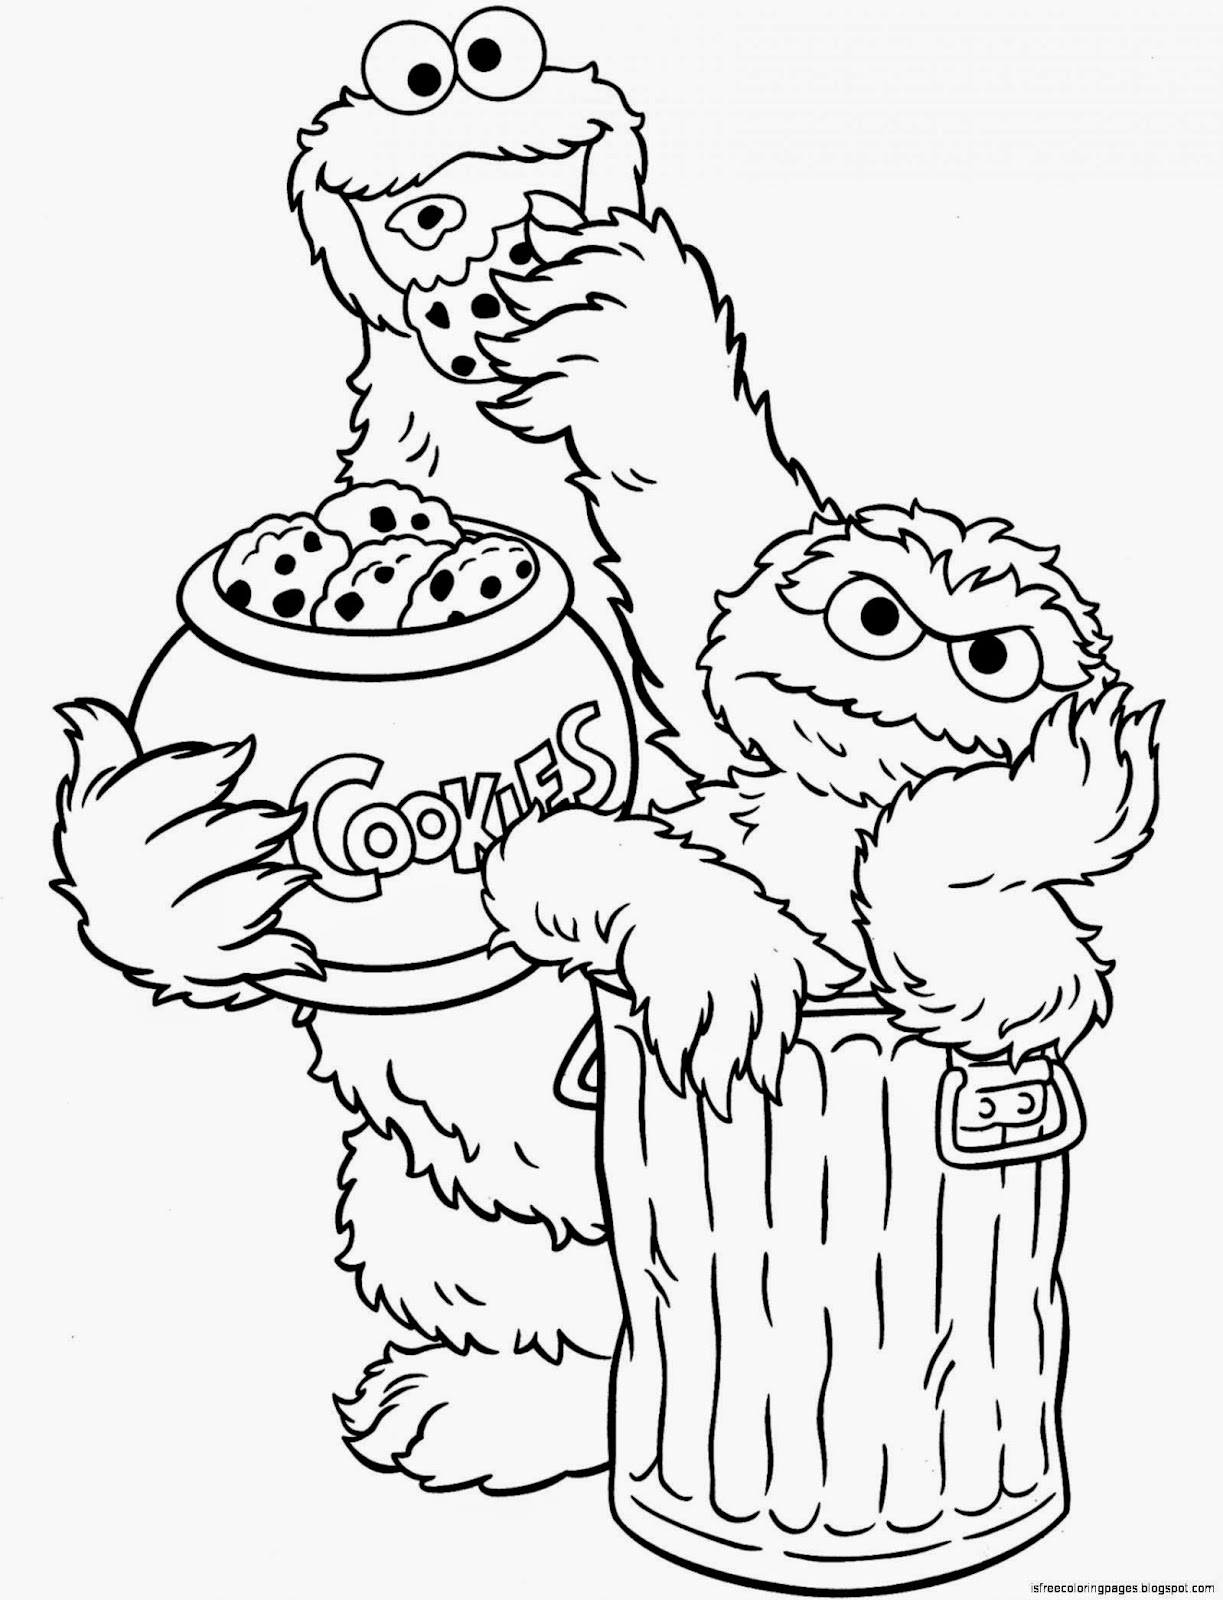 sesame street coloring pages - Pokemon Go Search for: tips ...